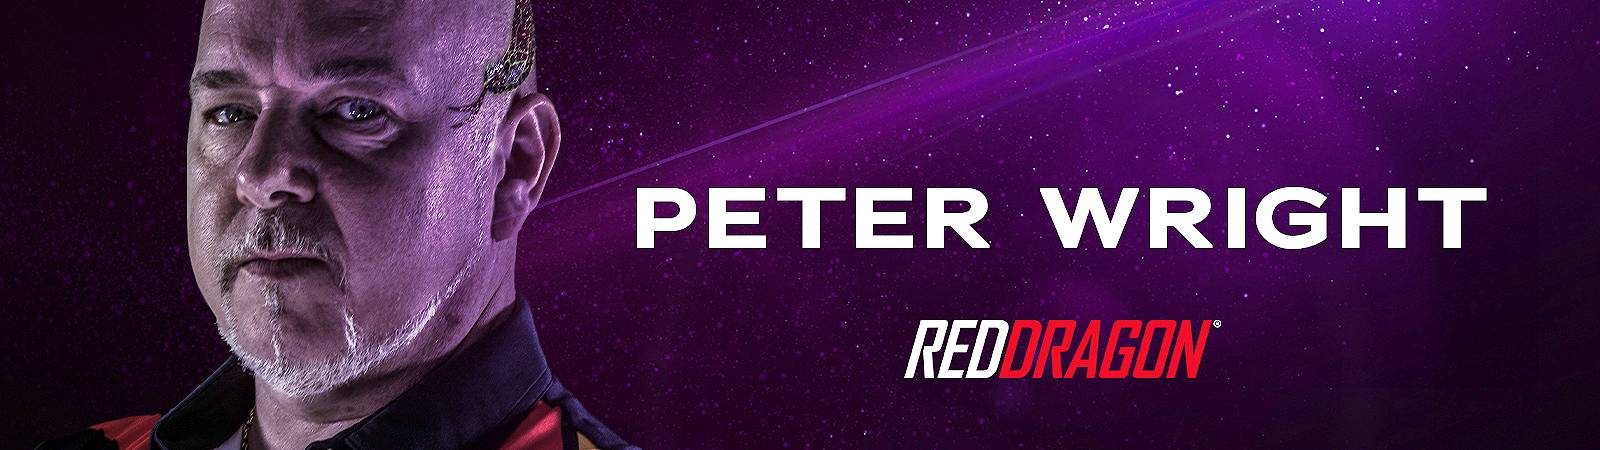 Red Dragon Peter Wright